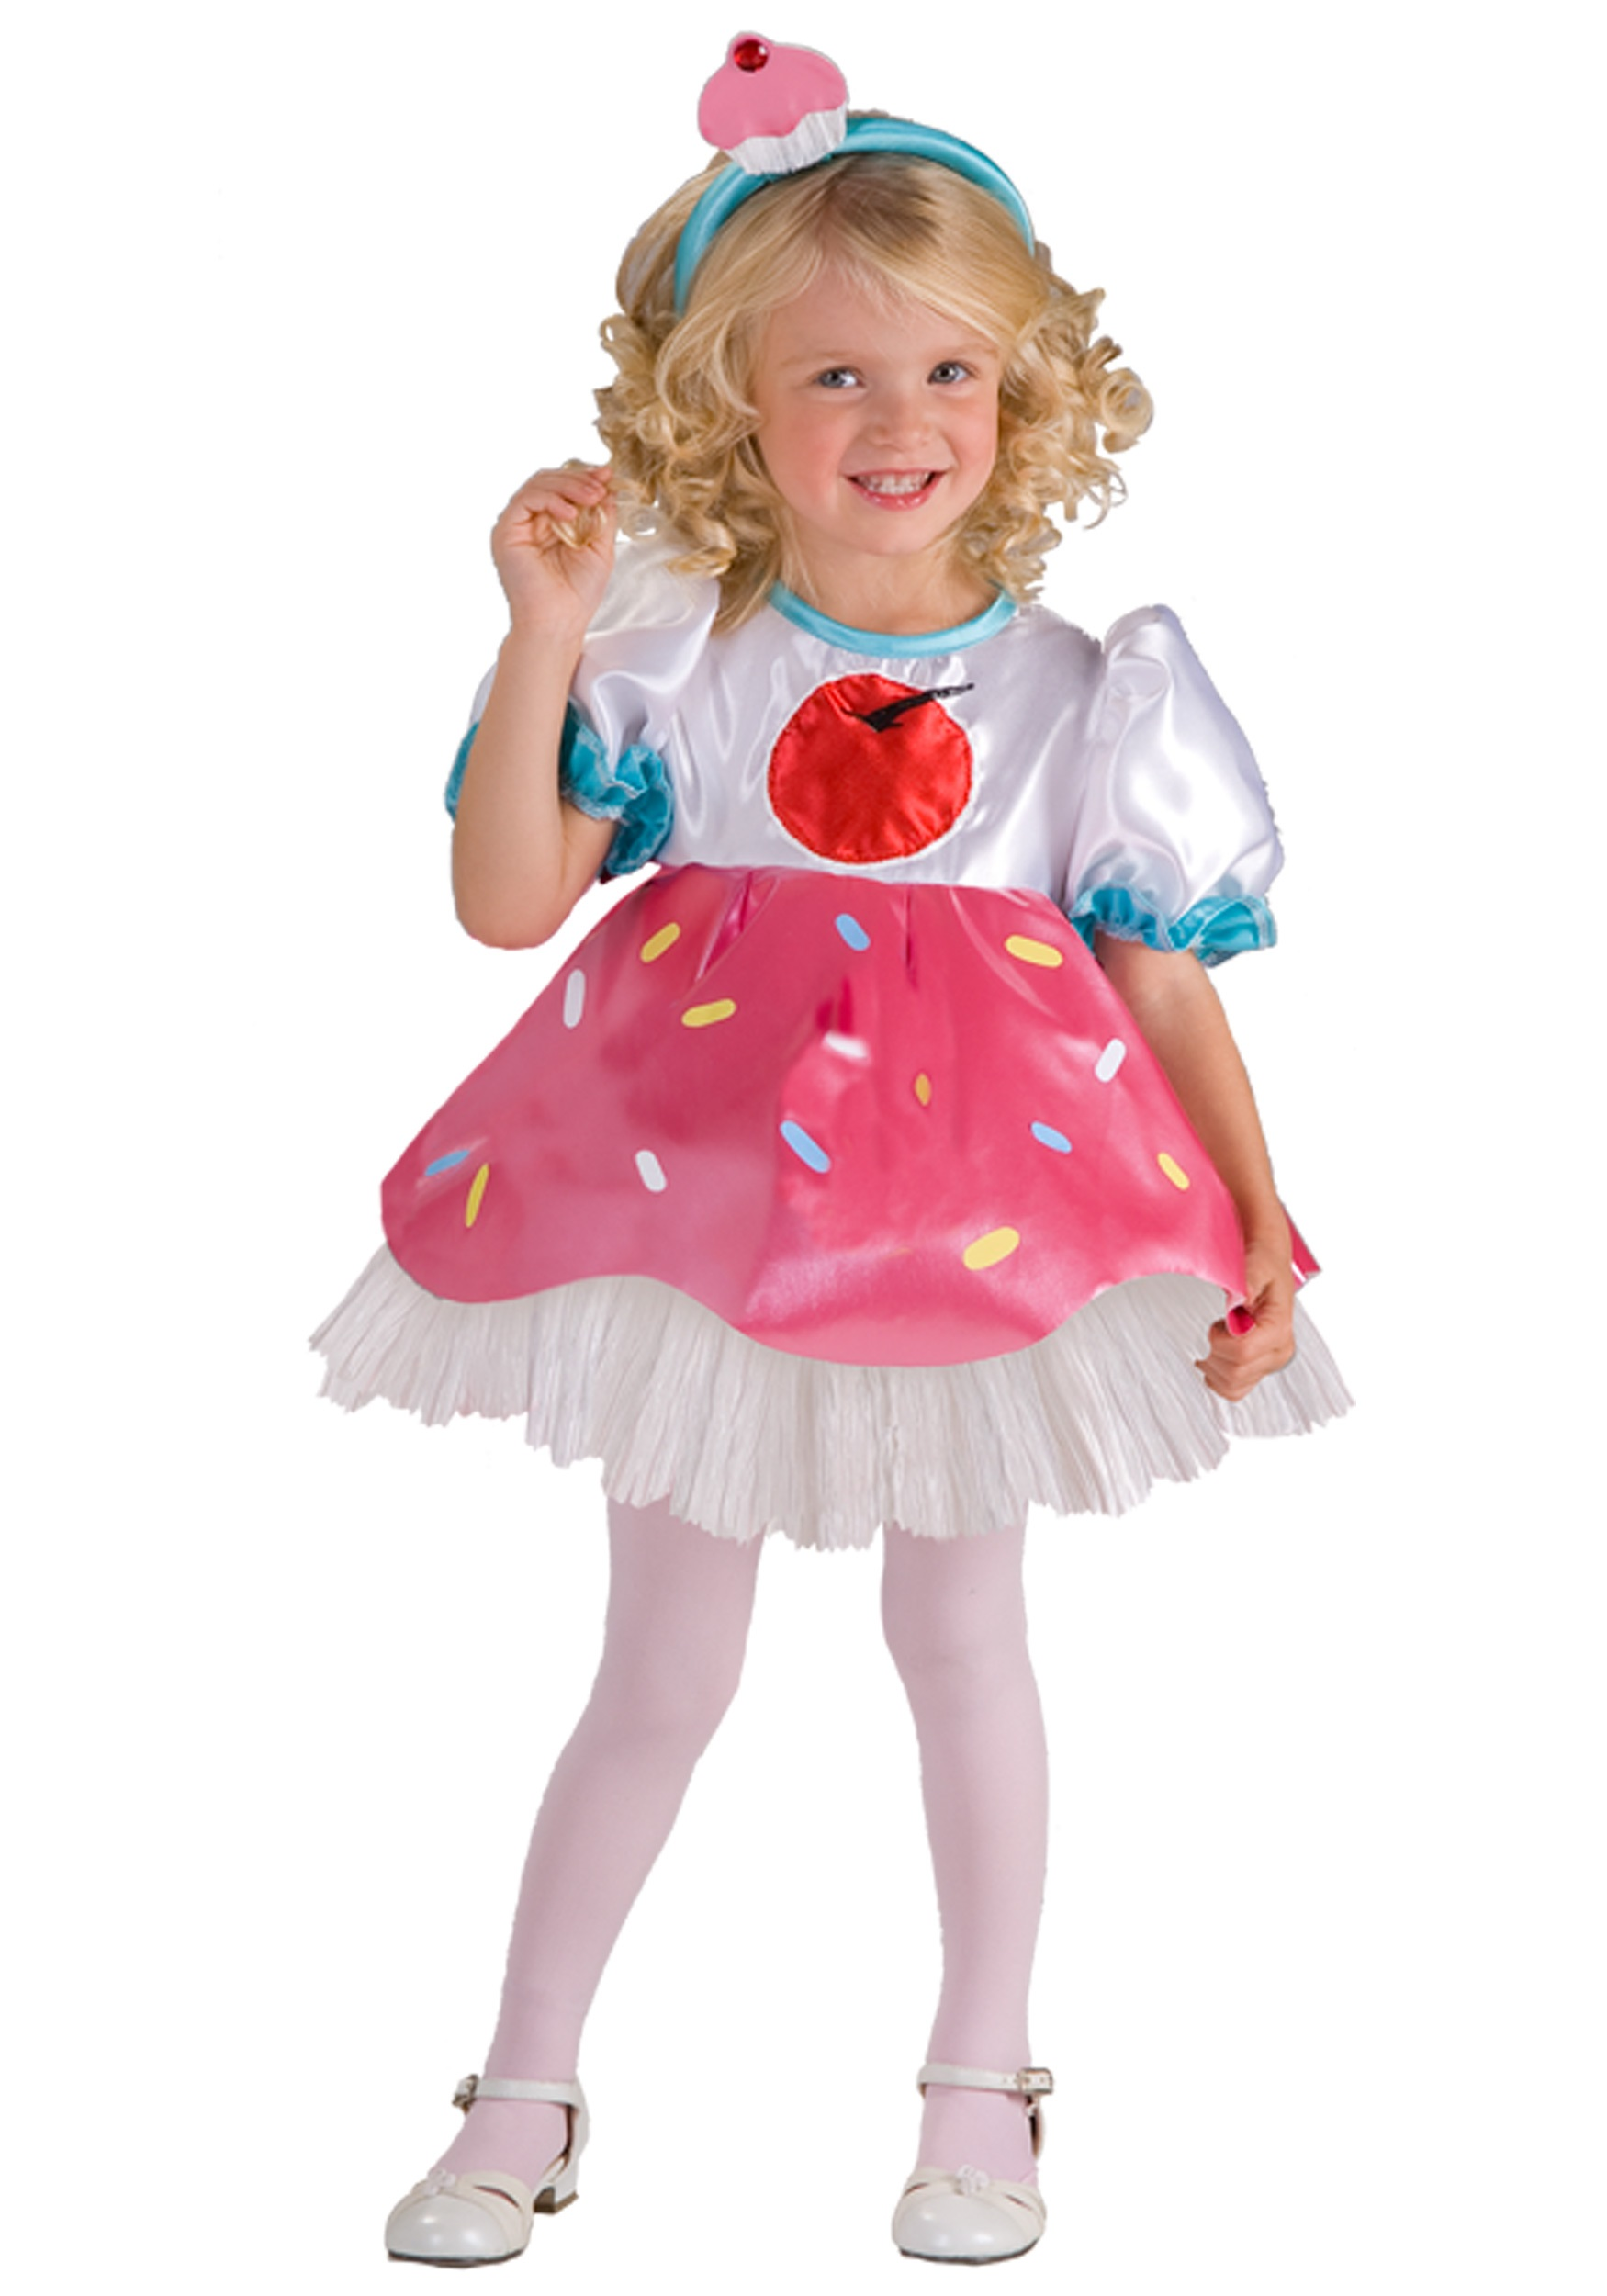 Cute Toddler Girl Halloween Costumes  sc 1 st  snackncake & 9 DC Cupcakes Girls Halloween Costume Ideas Photo - DIY Cupcake ...